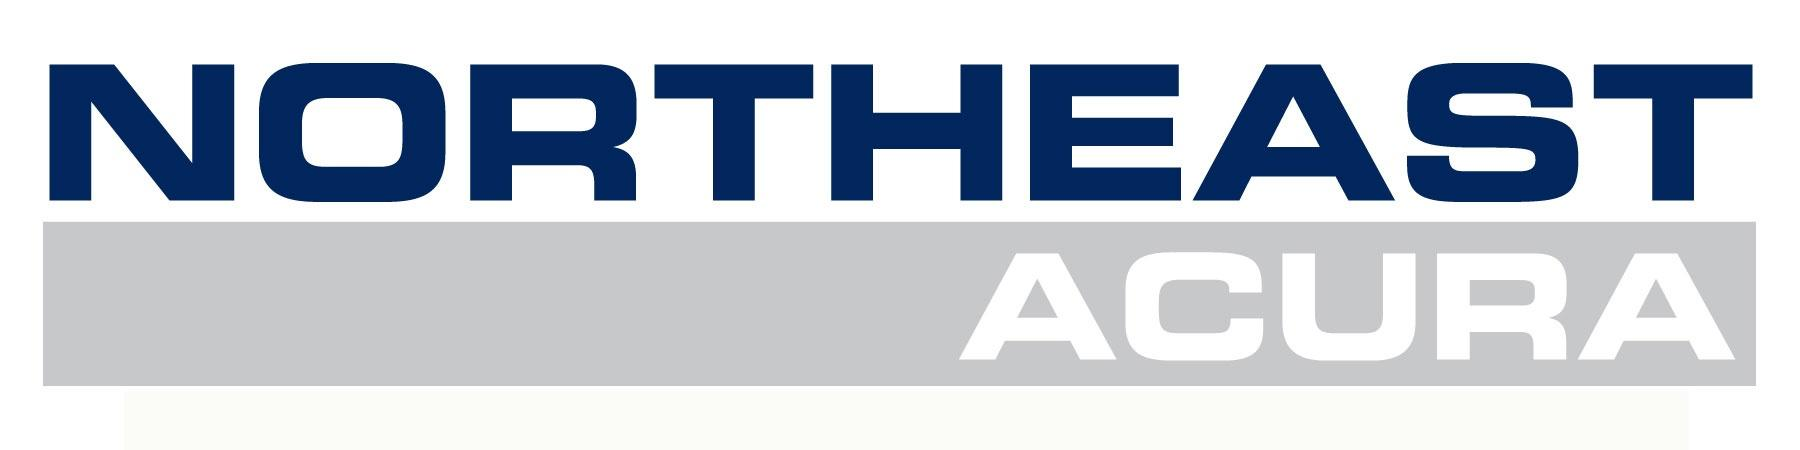 Northeast Acura Logo in dark blue and gray sans serif font, all caps